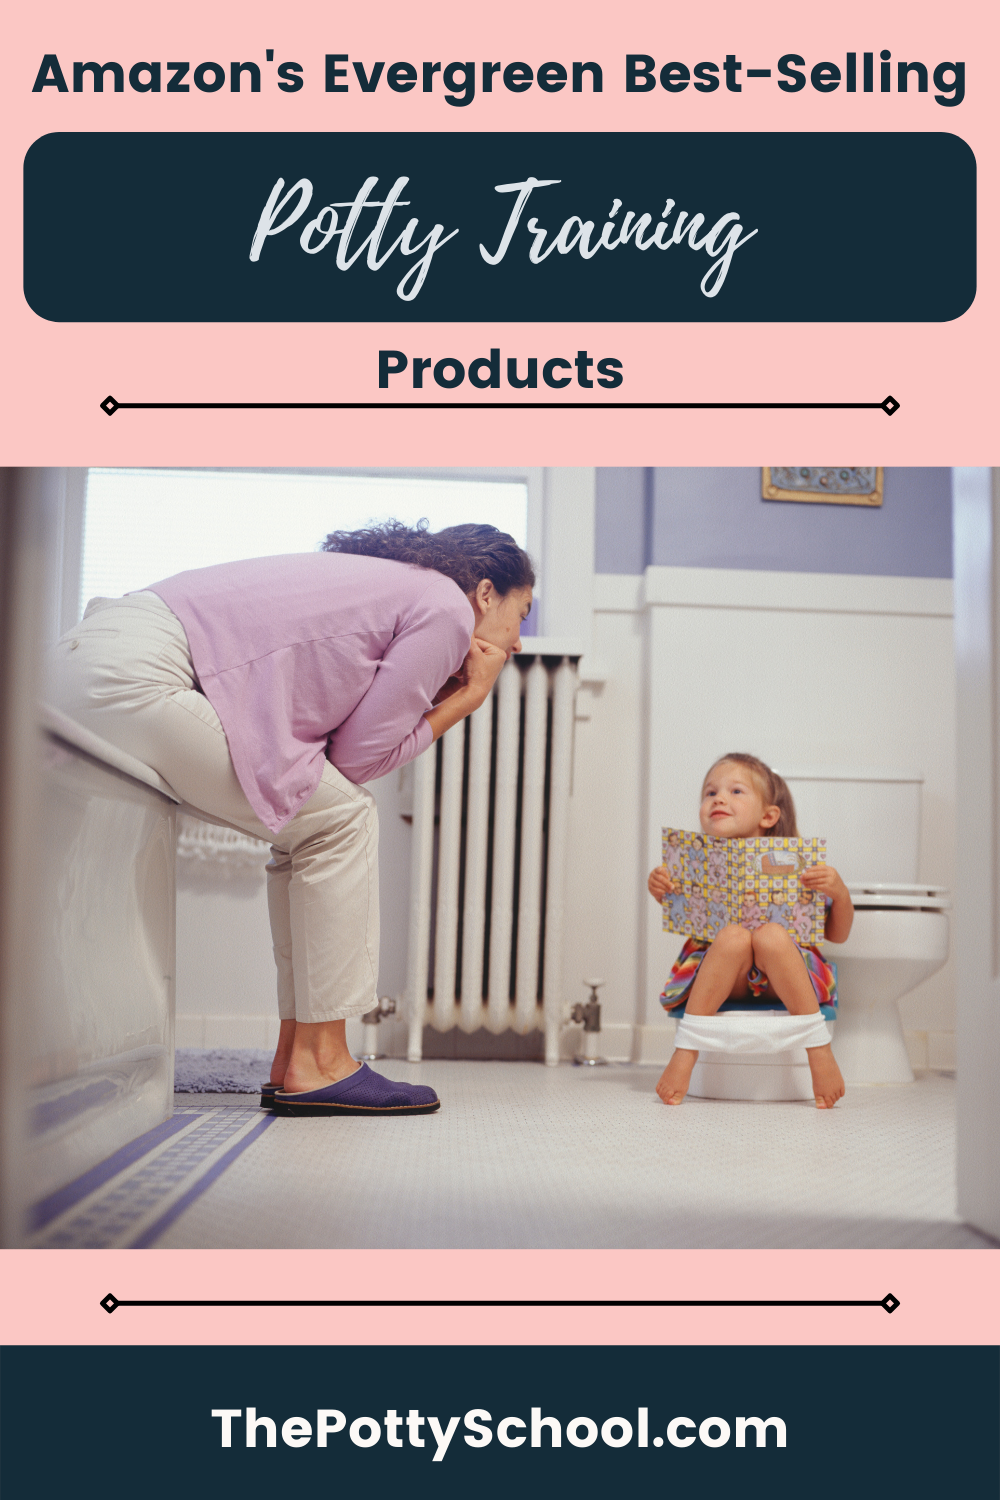 Best Selling Potty Training Products by Amazon The Potty School potty training